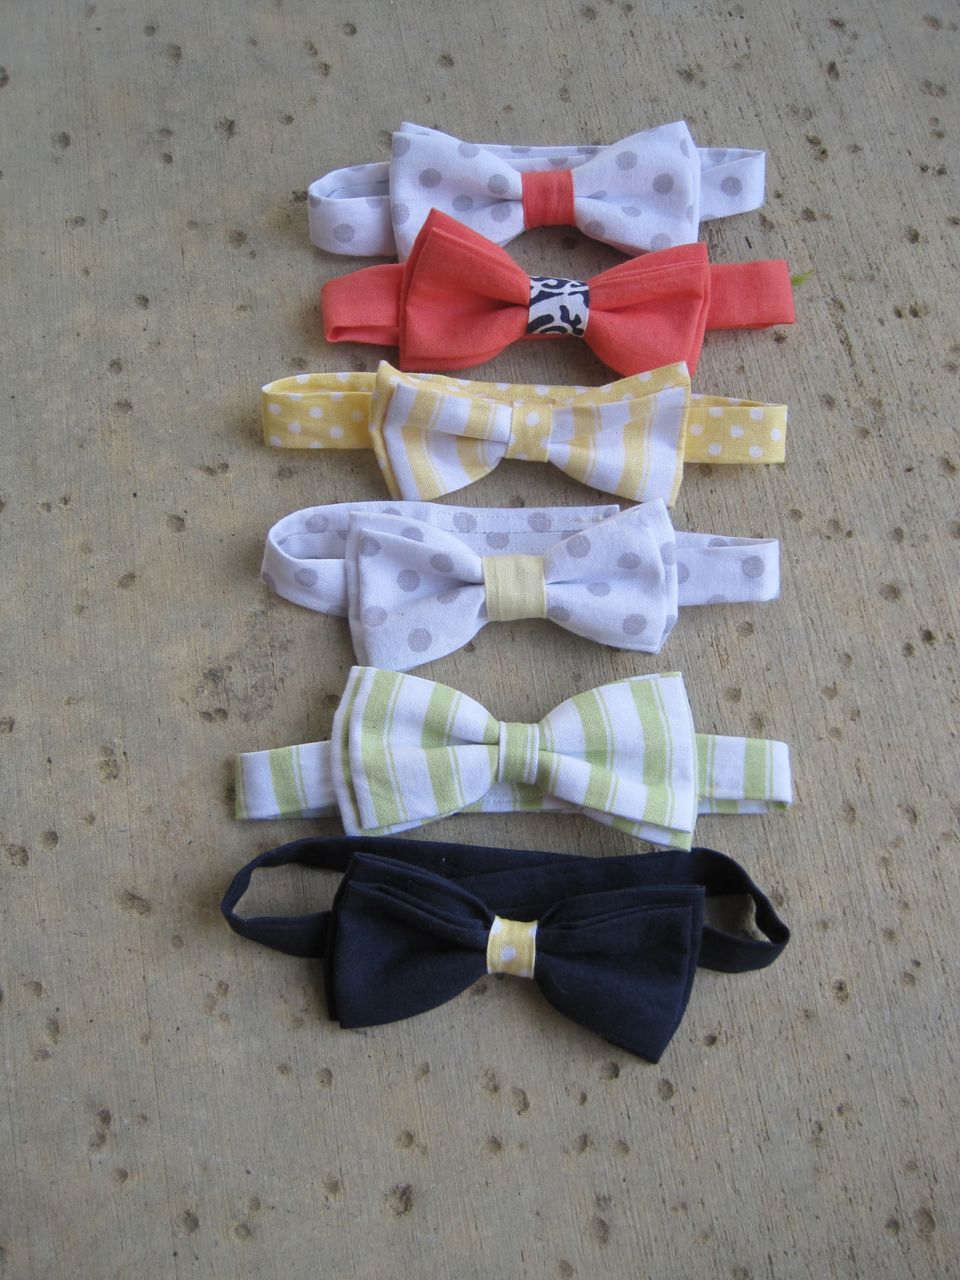 i u0026 39 m not kidding when i say this bow tie tutorial is the easiest ever   the pattern is super